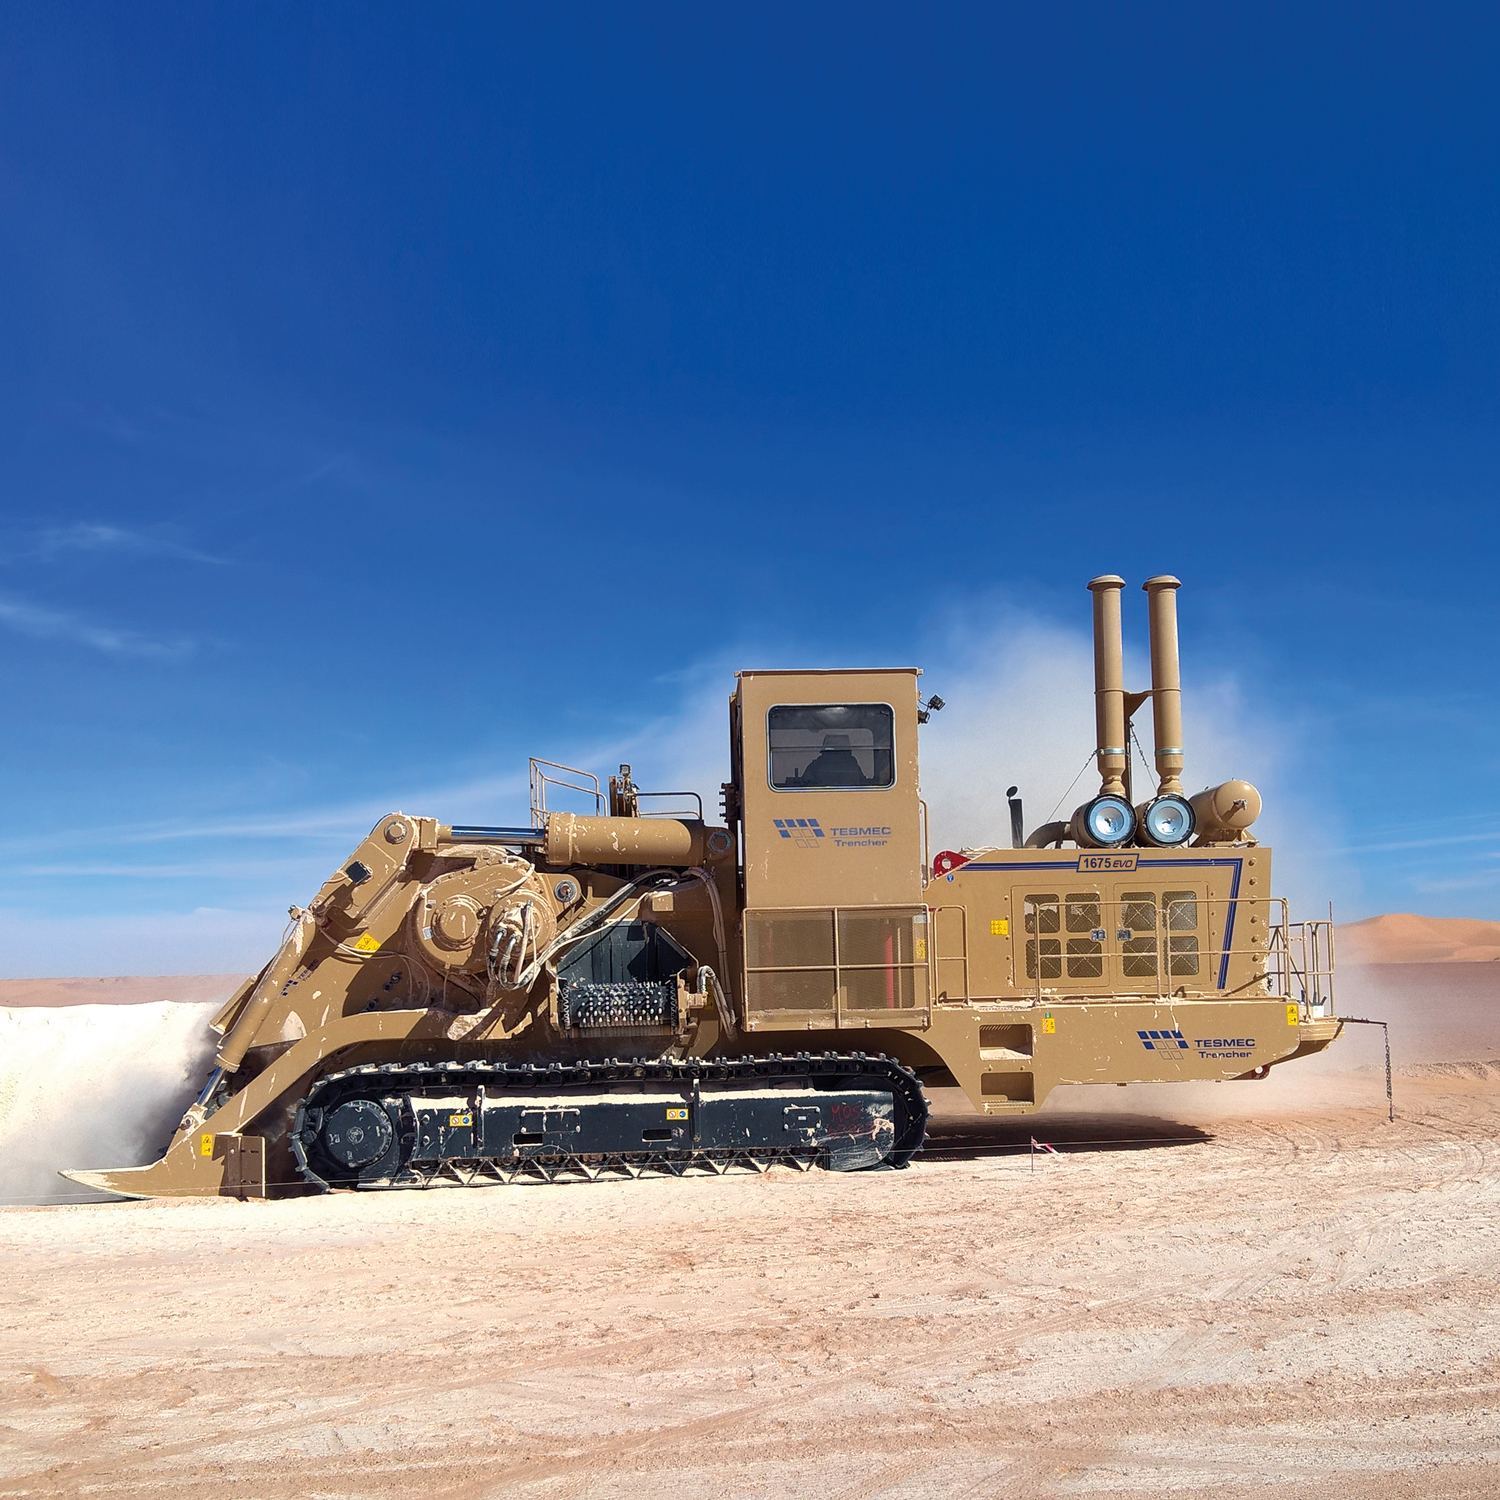 1675 EVO Tesmec Trencher for deep trenching works